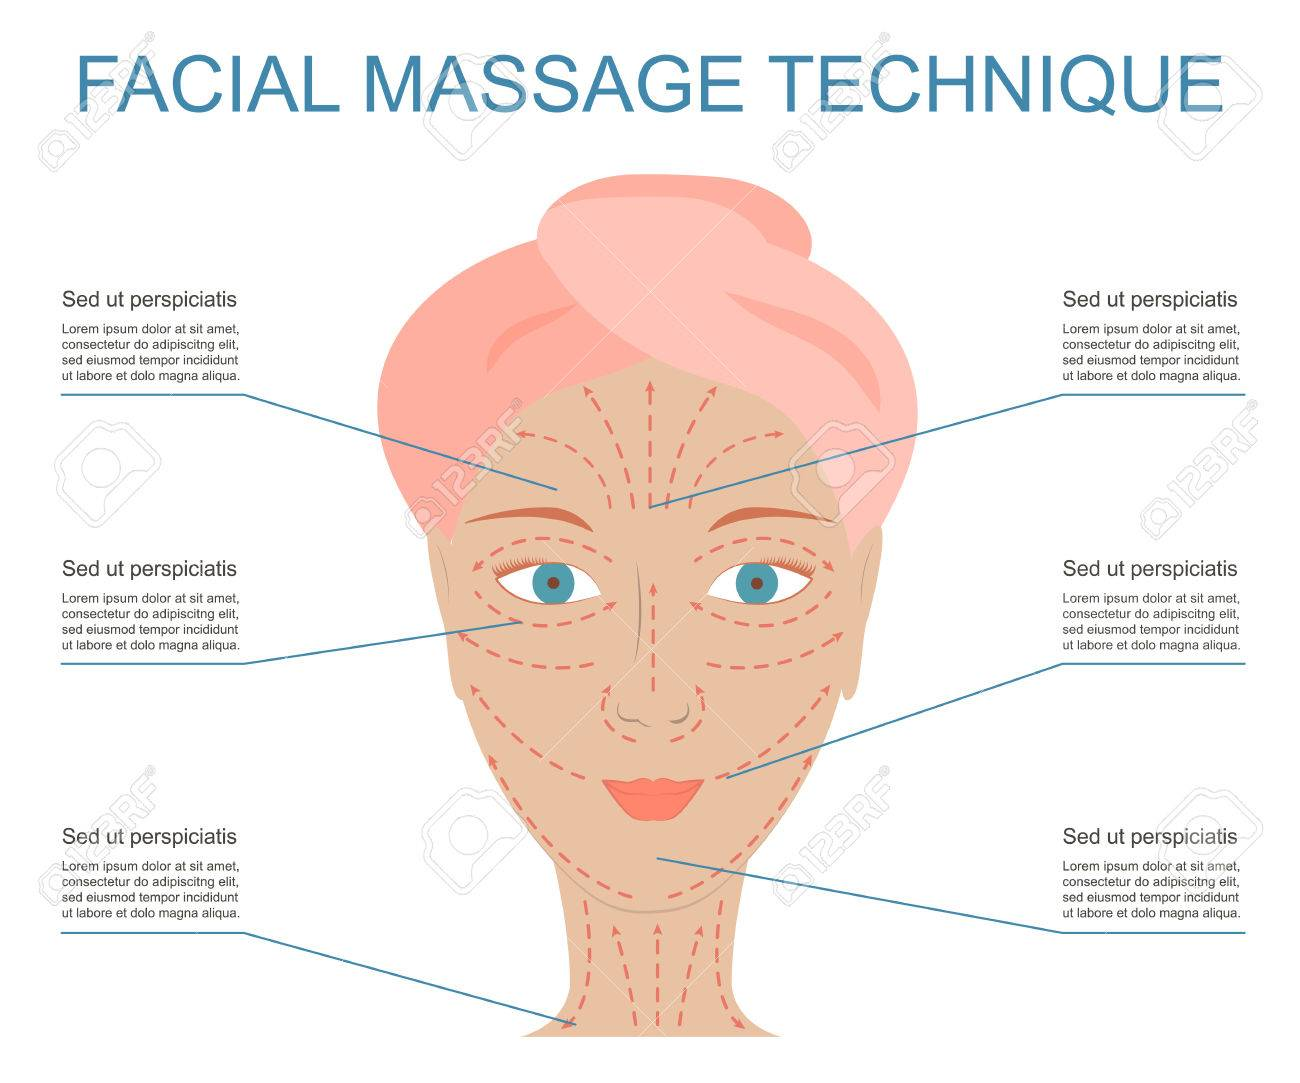 Poster Of Facial Technique Massage Infographic Basic Scheme Royalty Free Cliparts Vectors And Stock Illustration Image 62971650